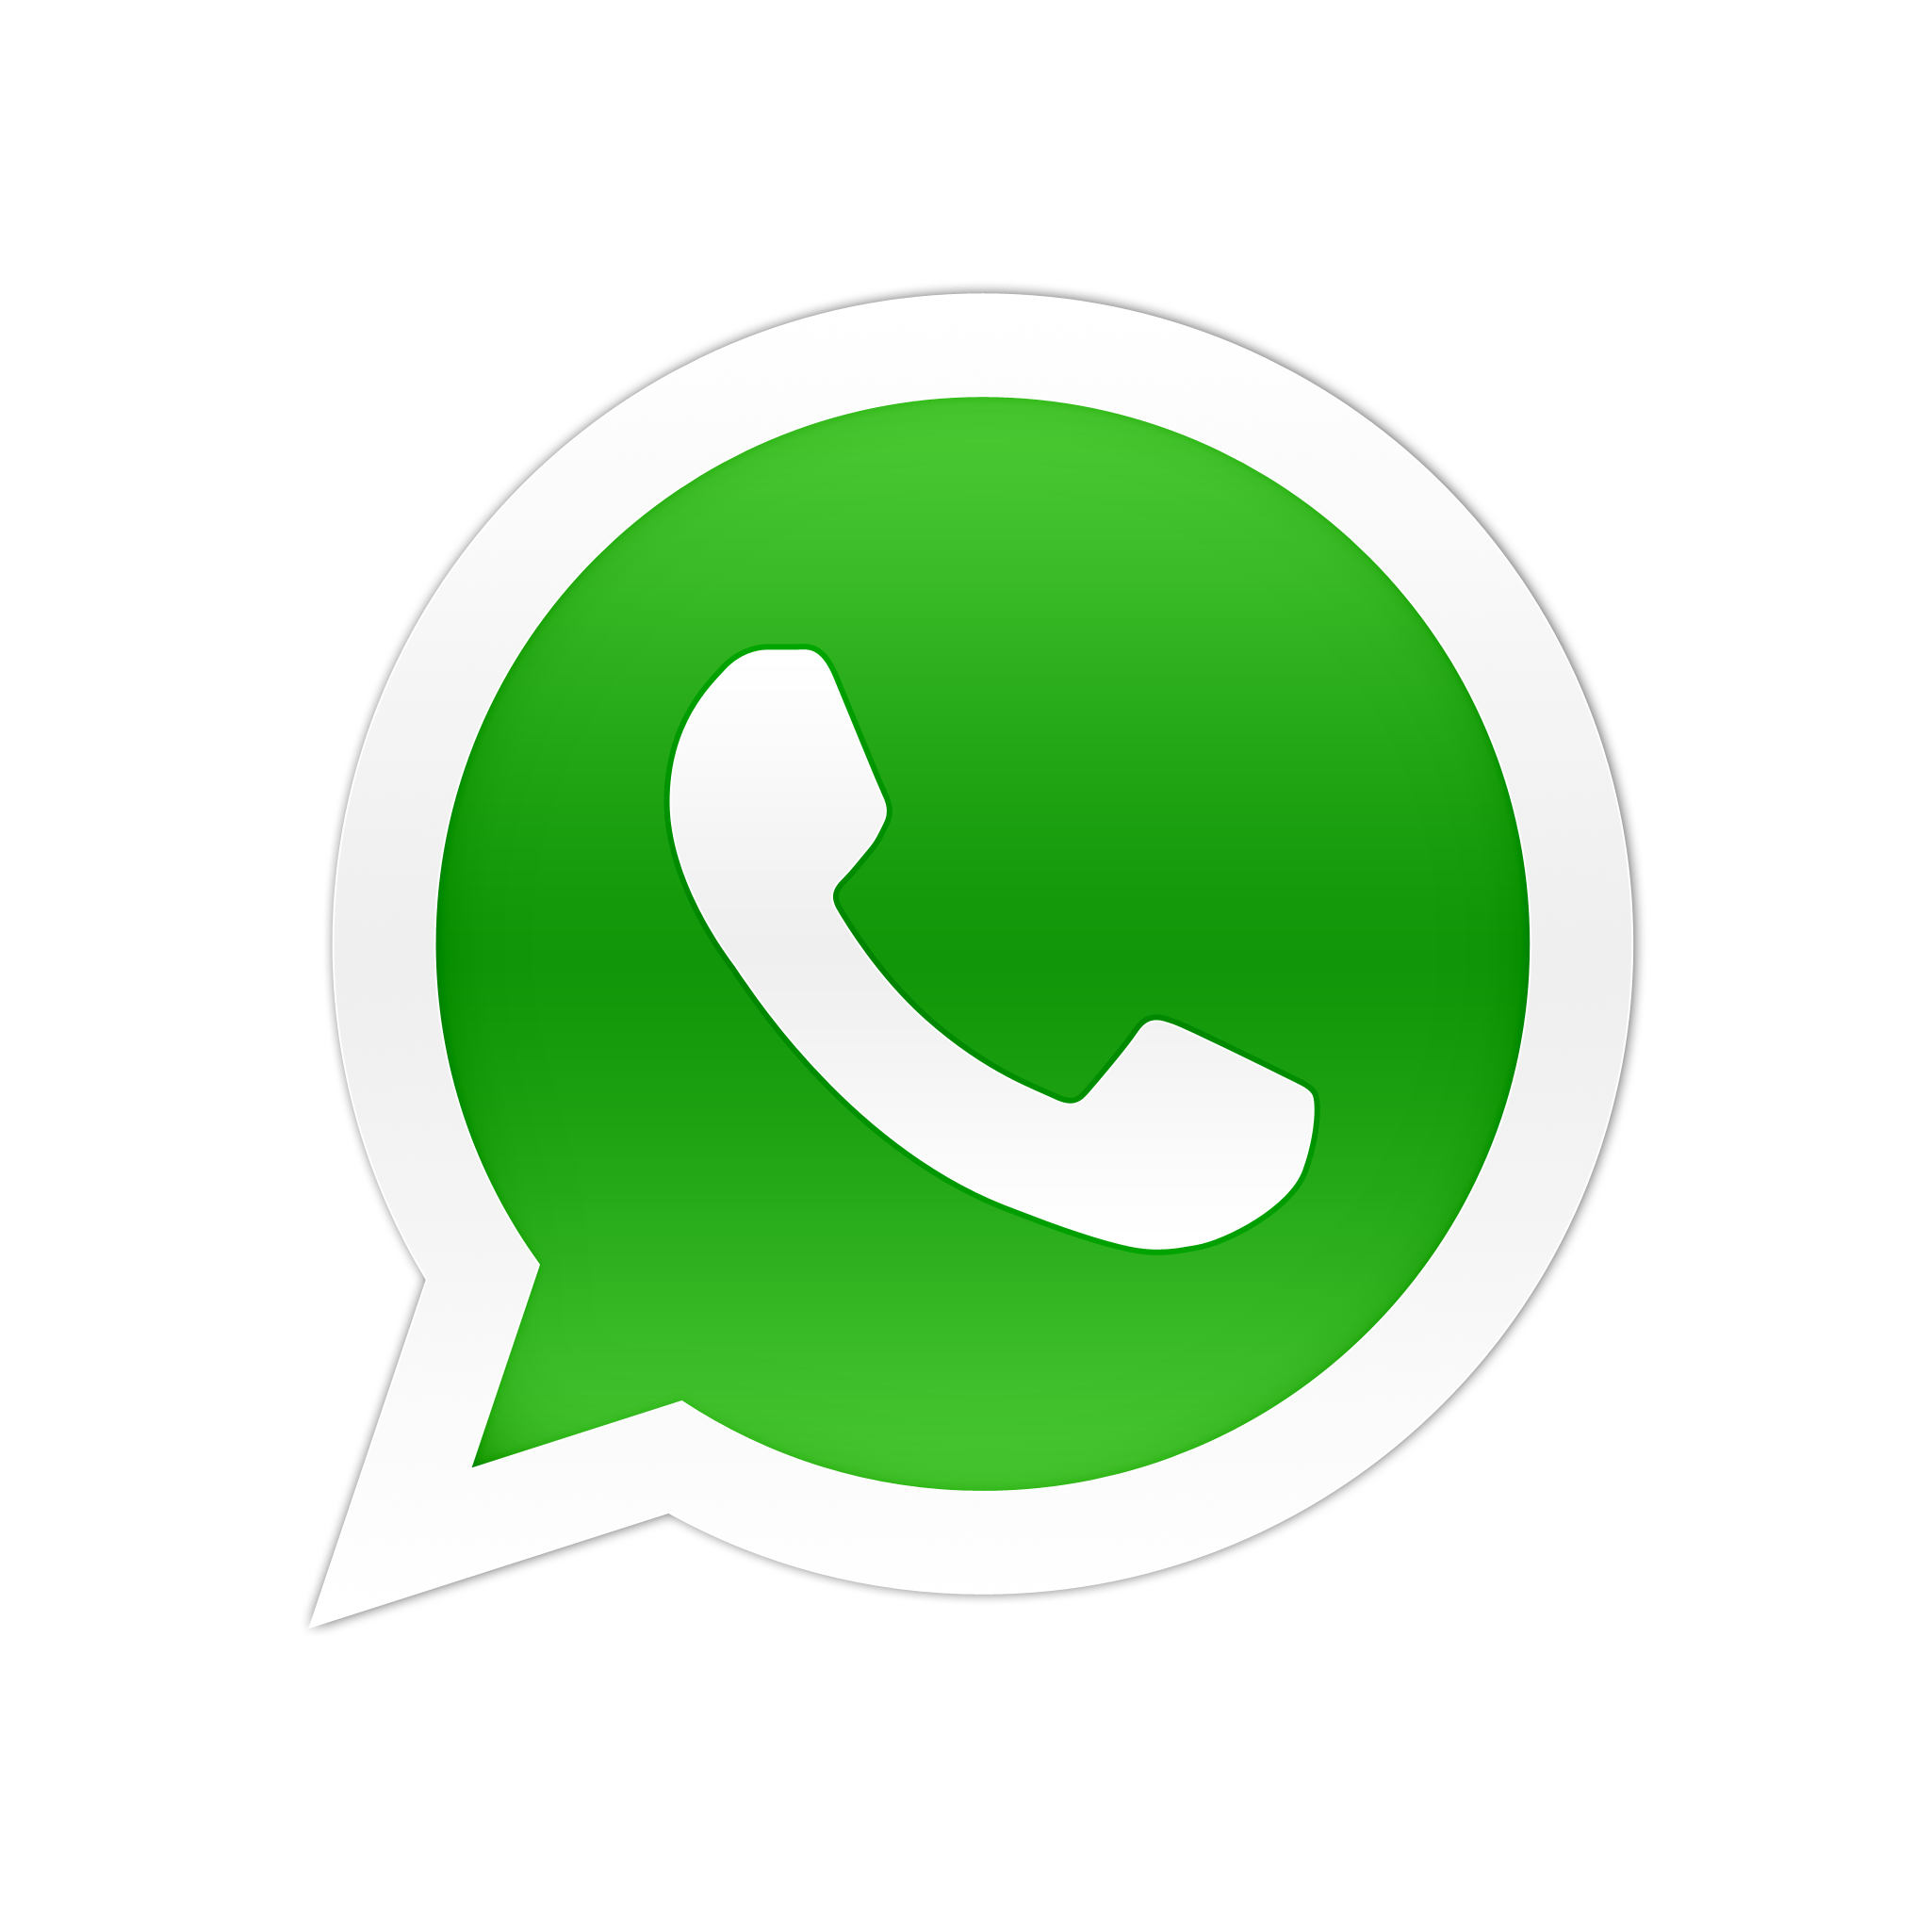 Whatsapp PNG - 19385